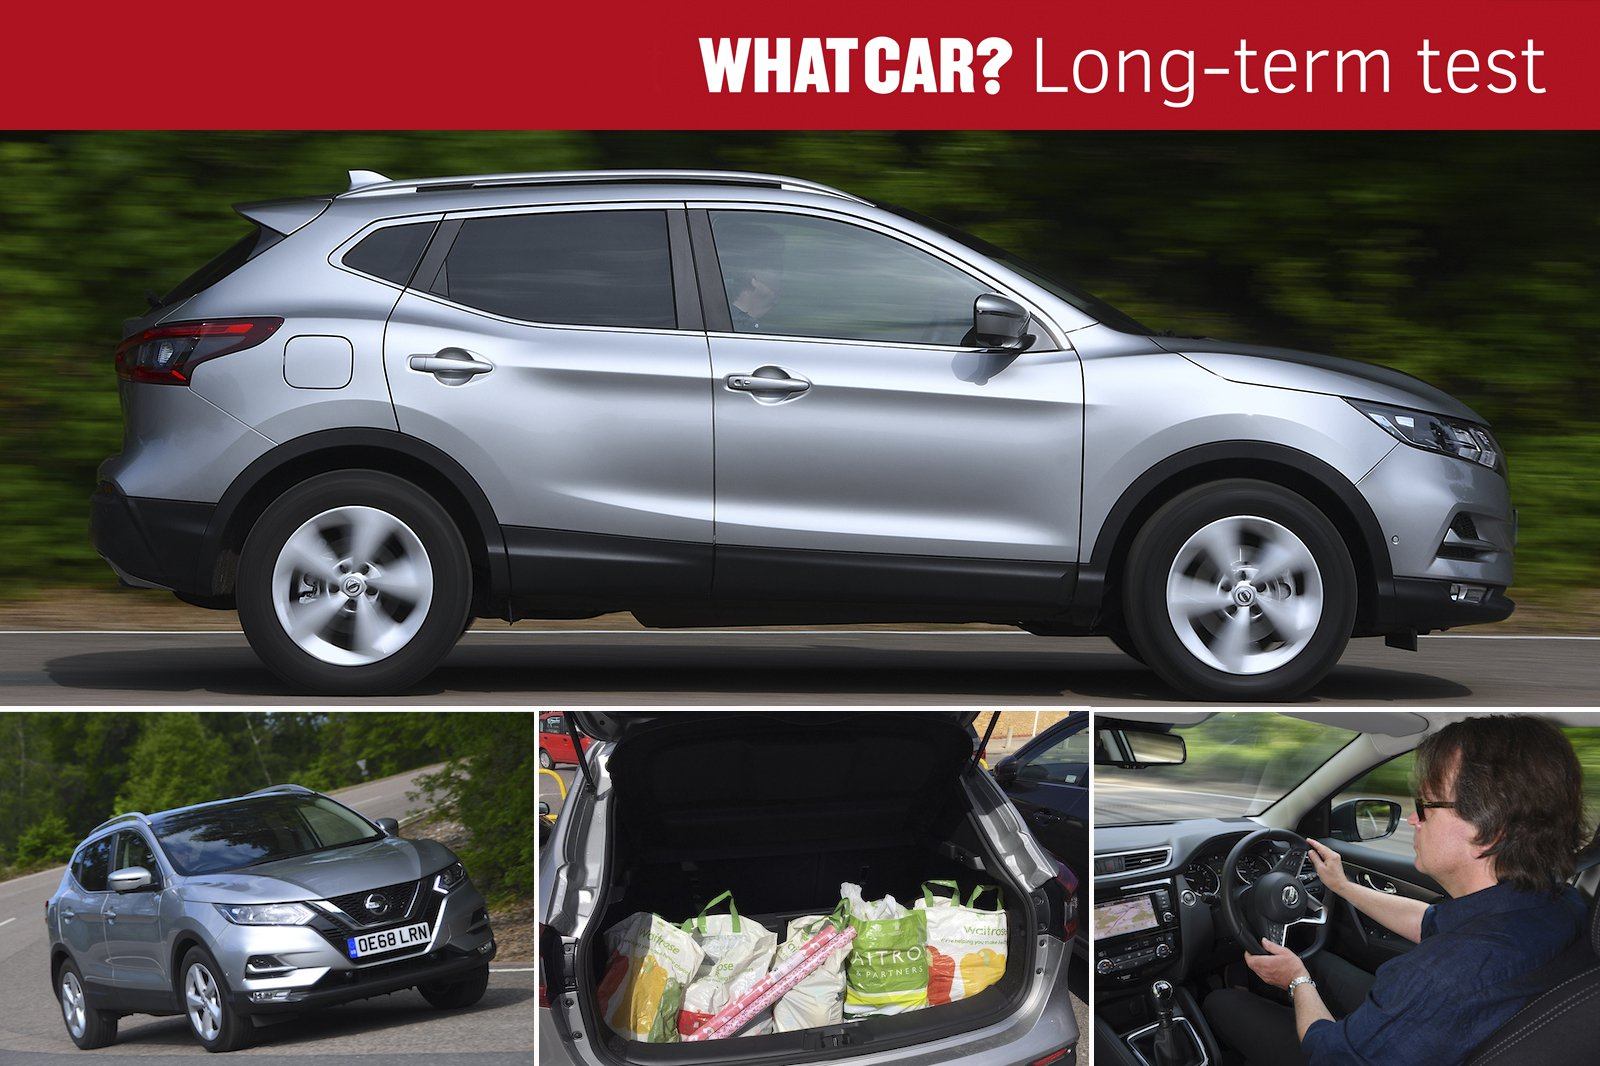 Used Nissan Qashqai long-term review